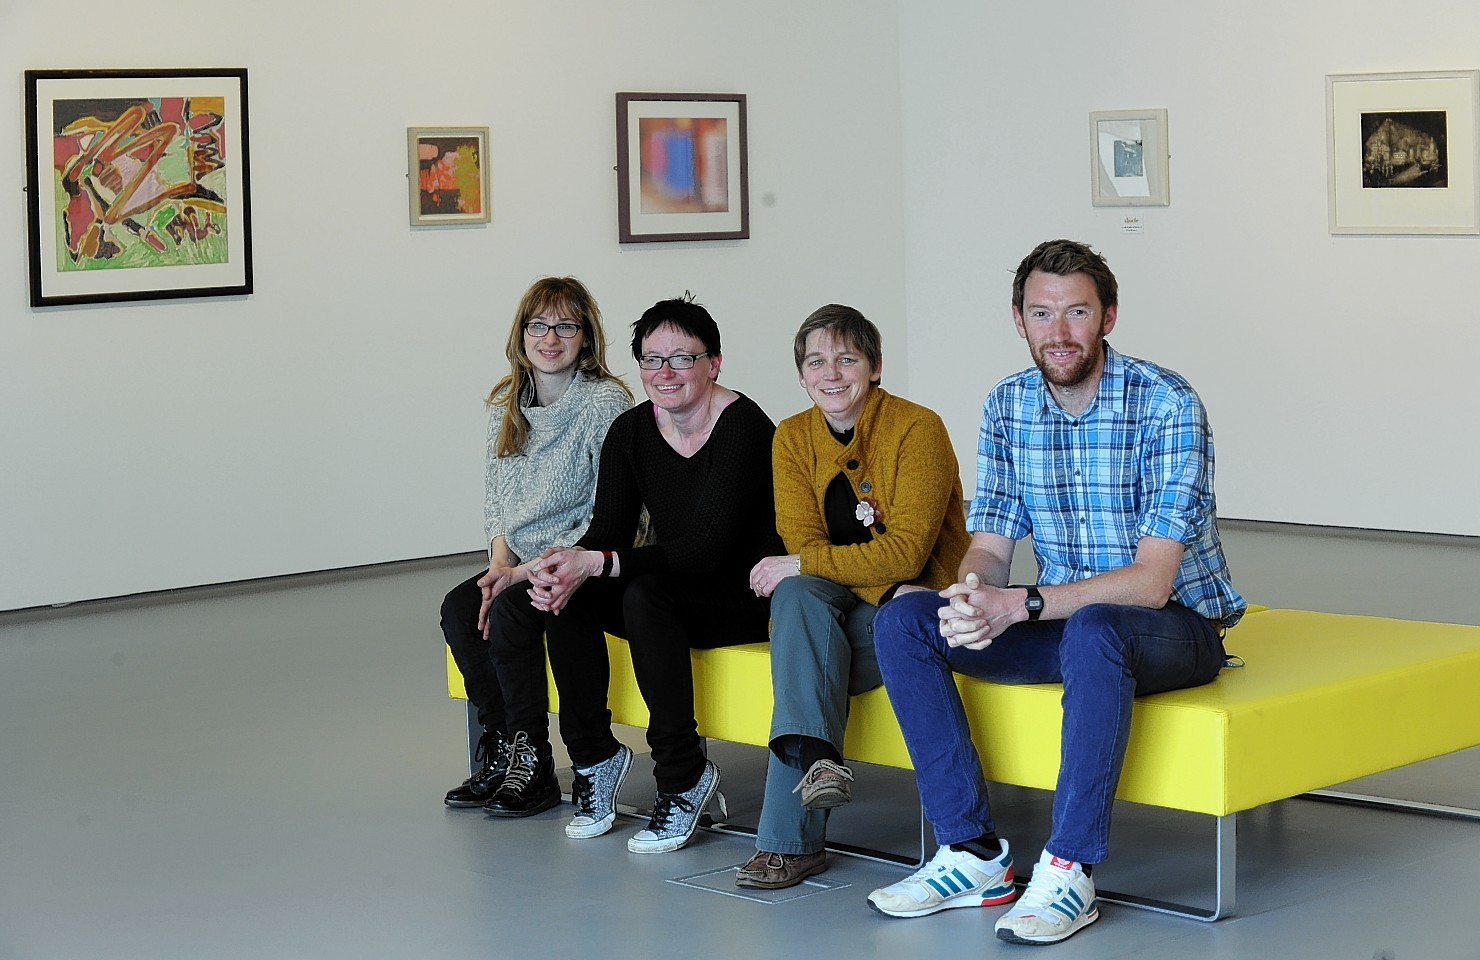 atherine Smith, Tamsin Greenlaw, Sally Thomson, director and Fraser MacDonald in the Suttie Art Space. Picture by Jim Irvine